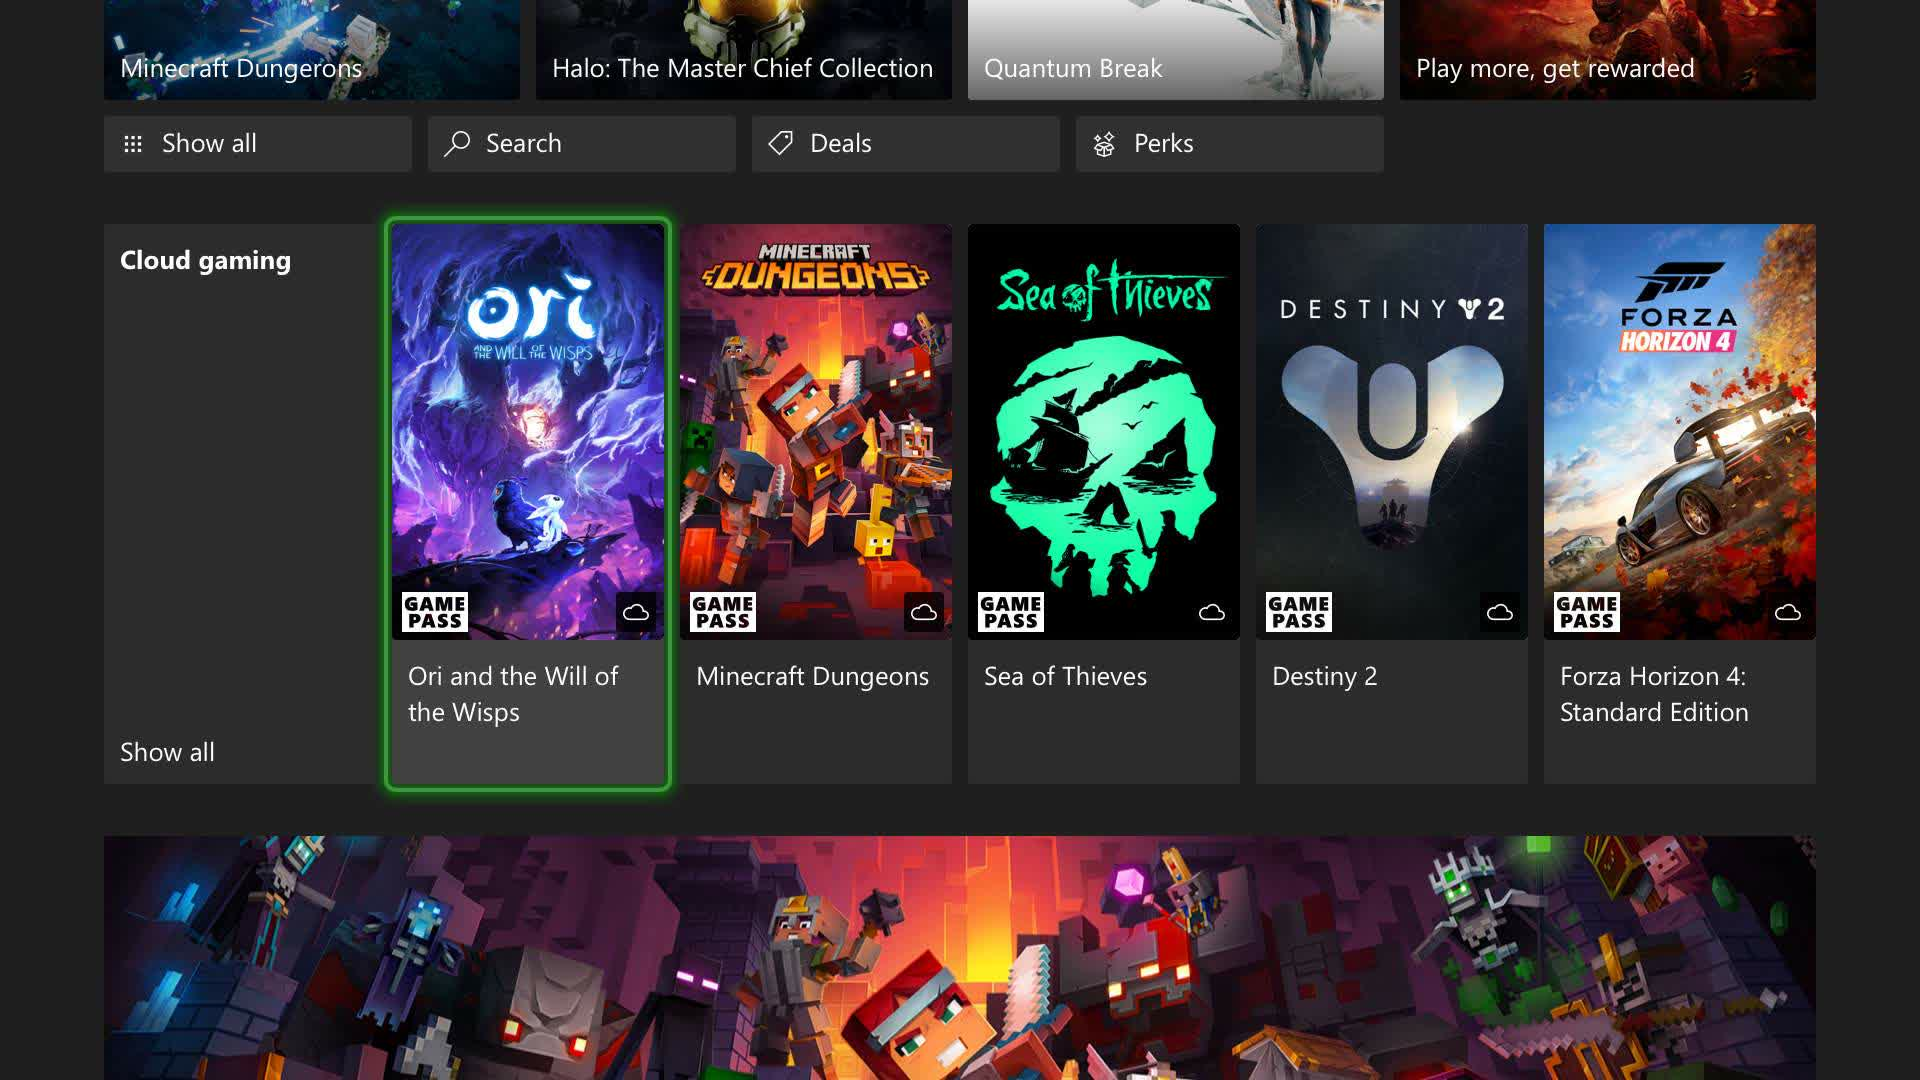 Microsoft's cloud gaming service is coming to Xbox One and Xbox Series consoles this holiday season